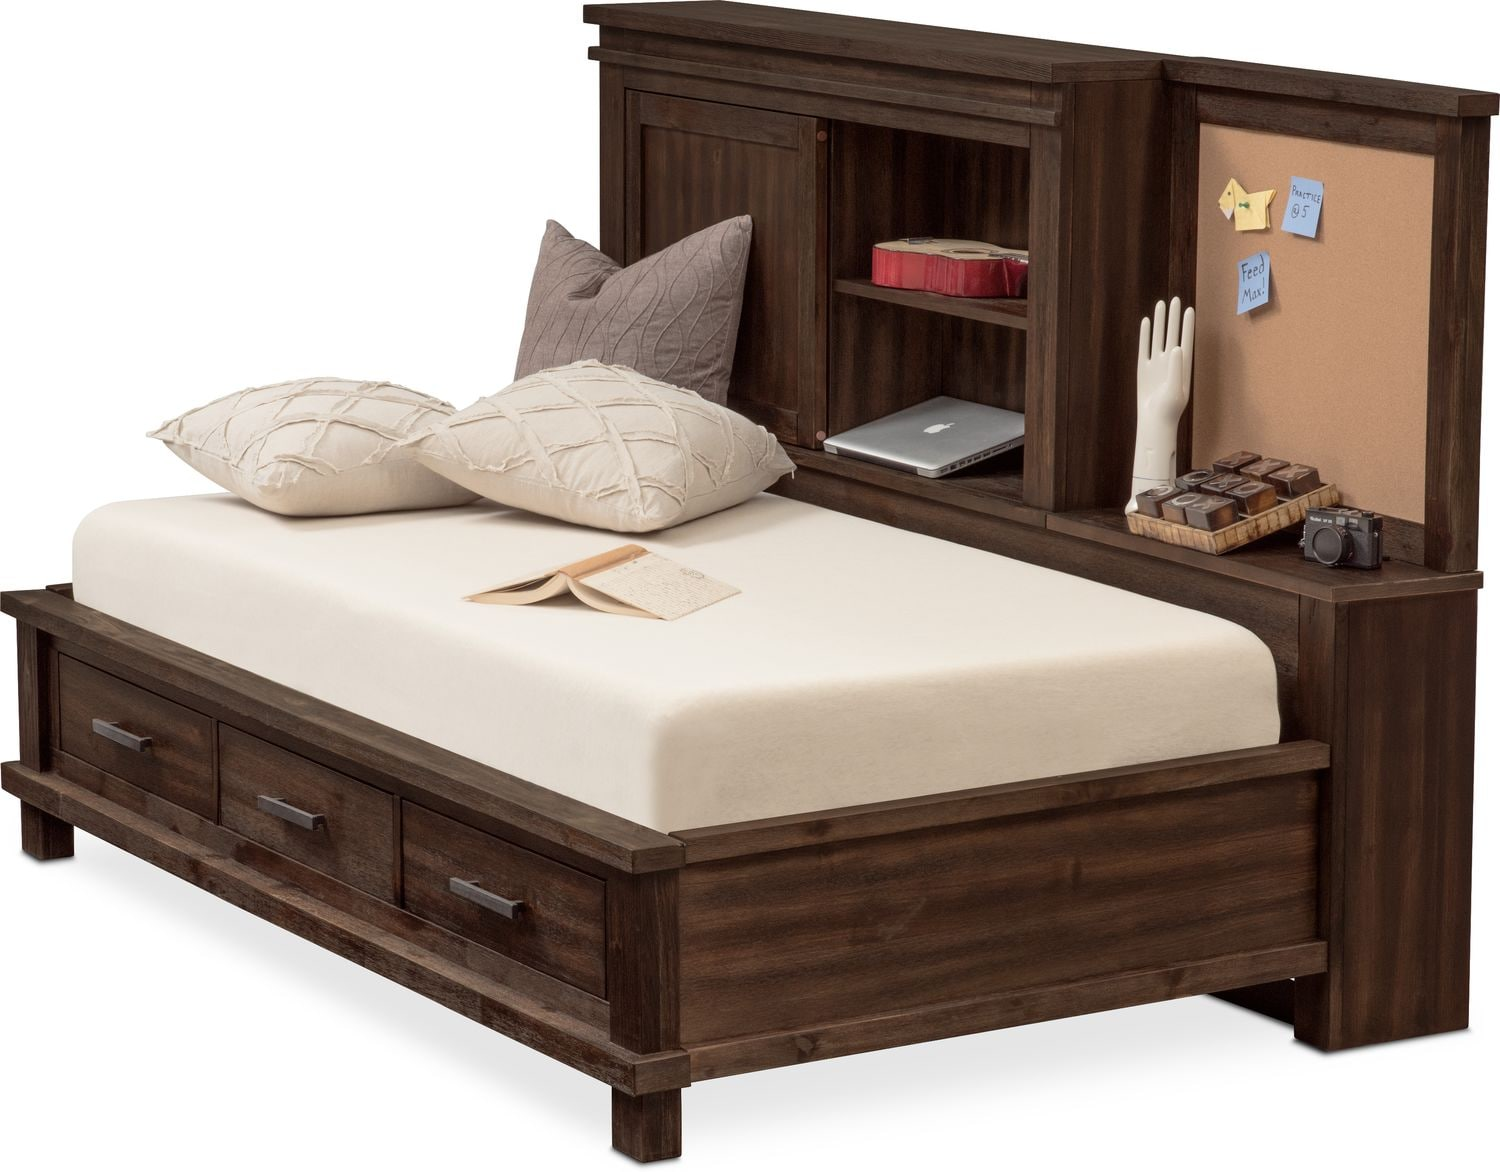 Bedroom Furniture - Tribeca Lounge Storage Bed